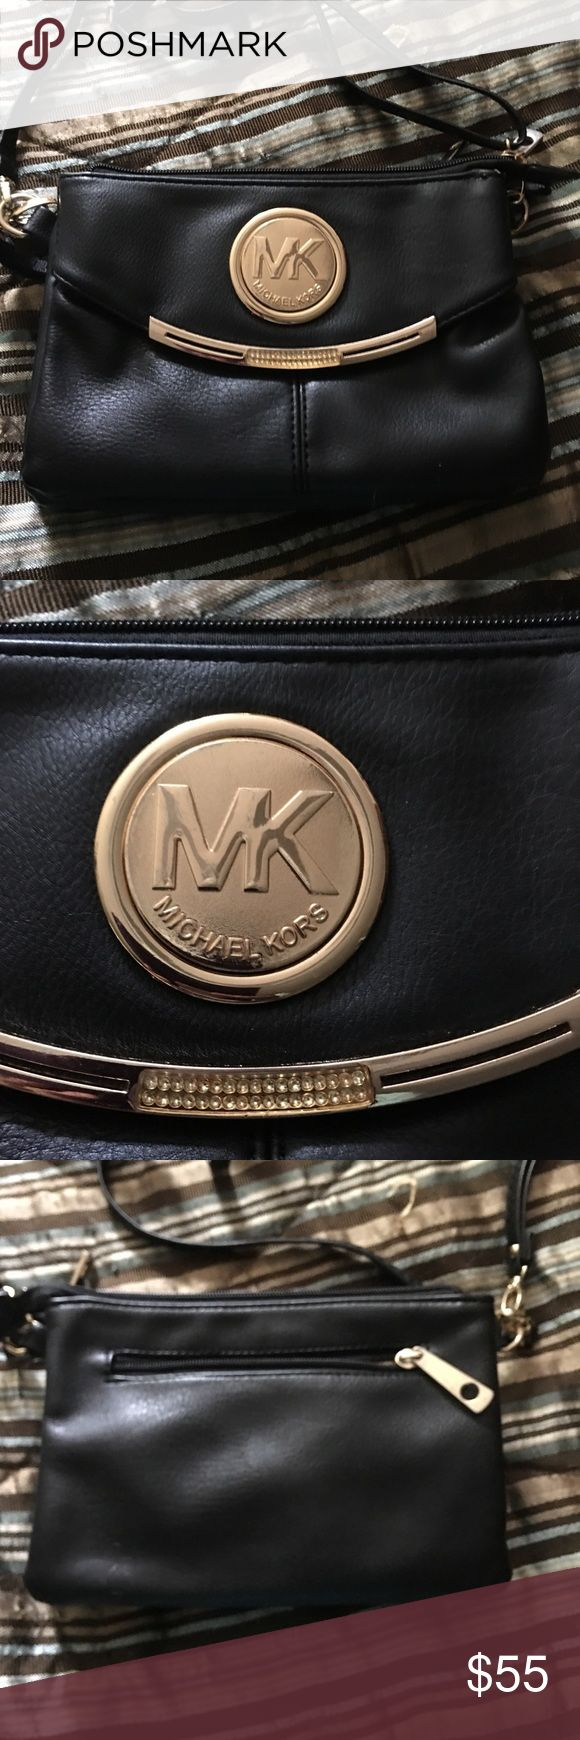 Michael Kors purse Navy blue MK Purse used a few times still in great condition has 4 big pockets and couple little zipper pockets Michael Kors Bags Crossbody Bags